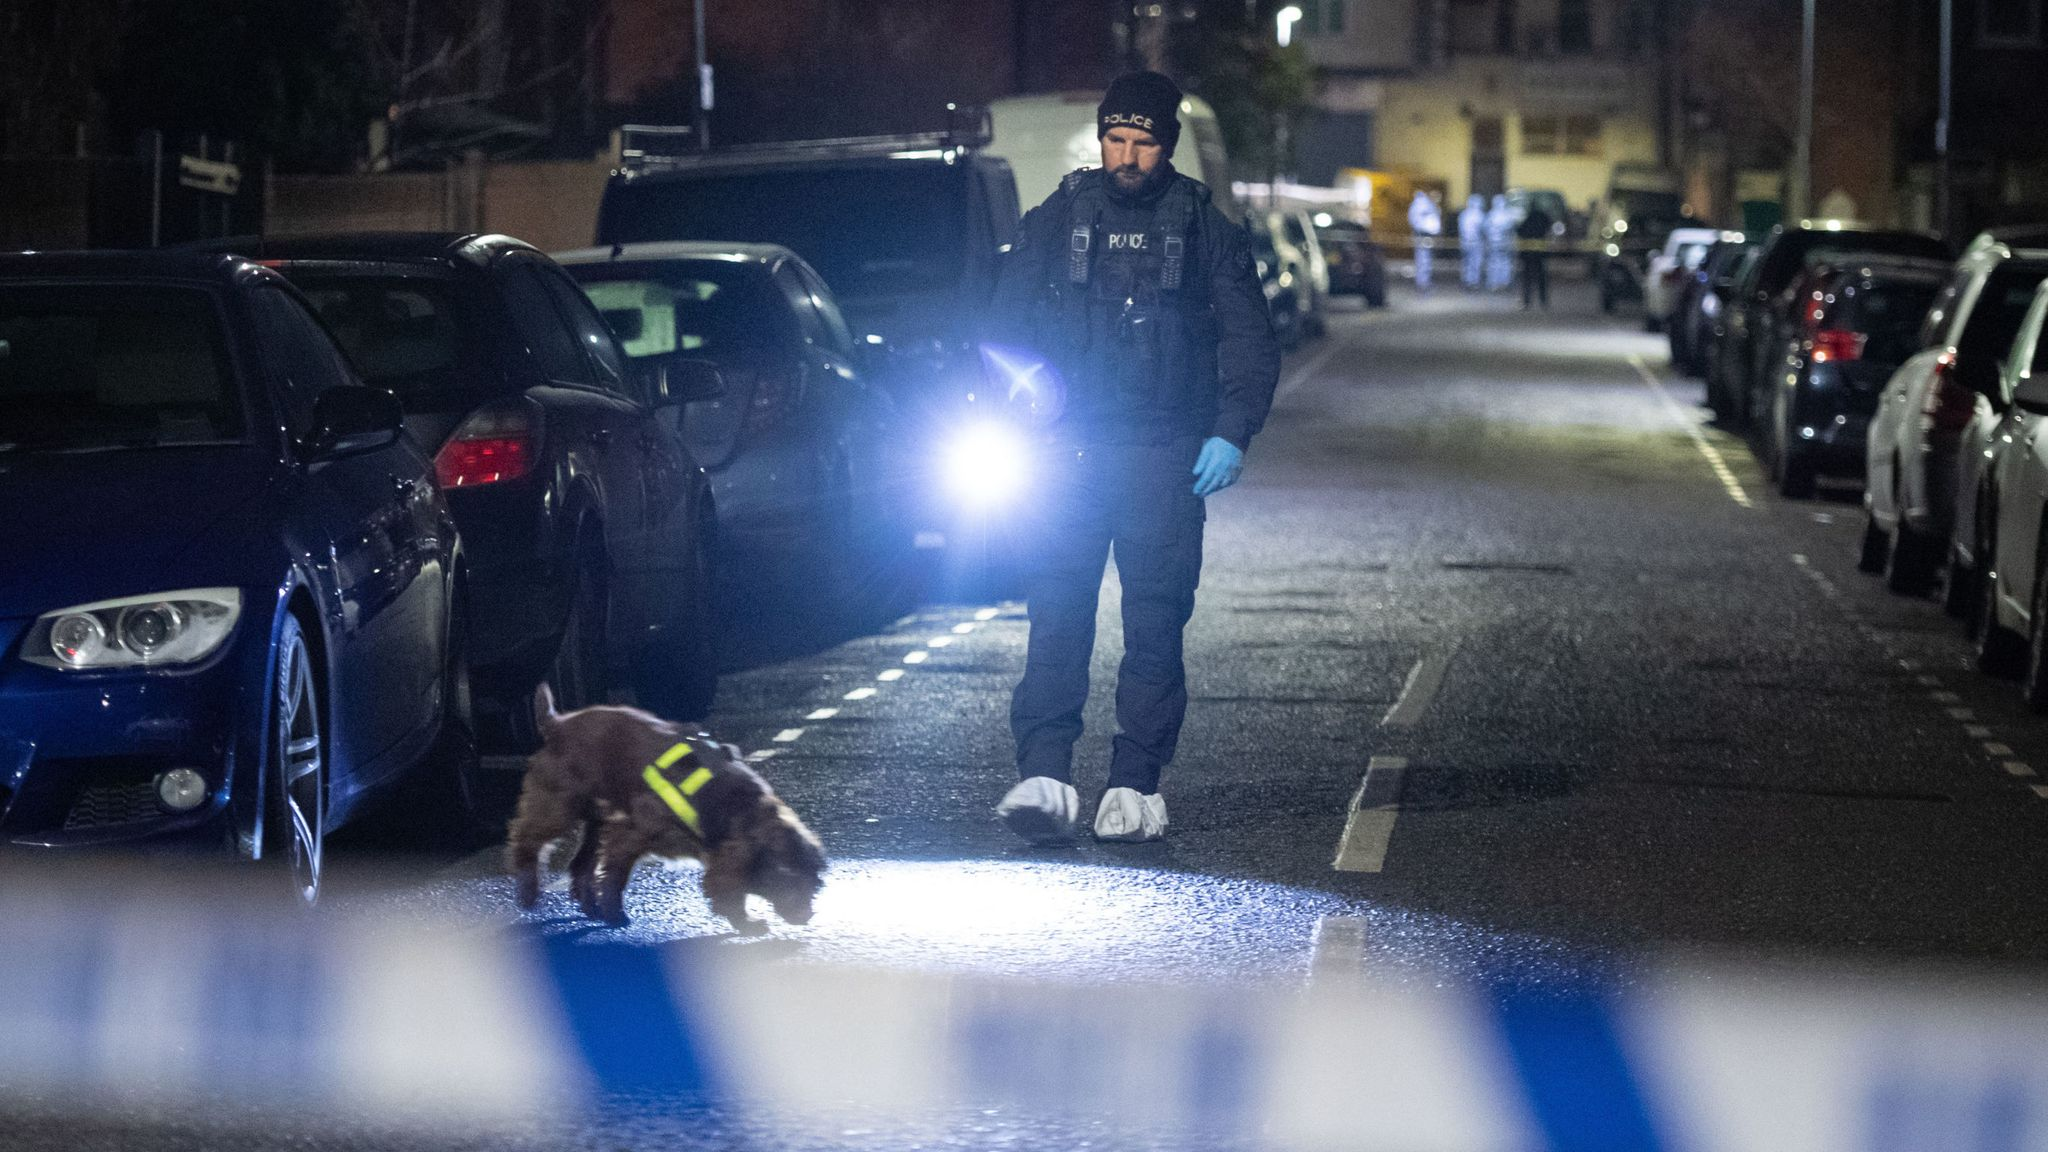 Three men die from stab wounds in Seven Kings area of northeast London